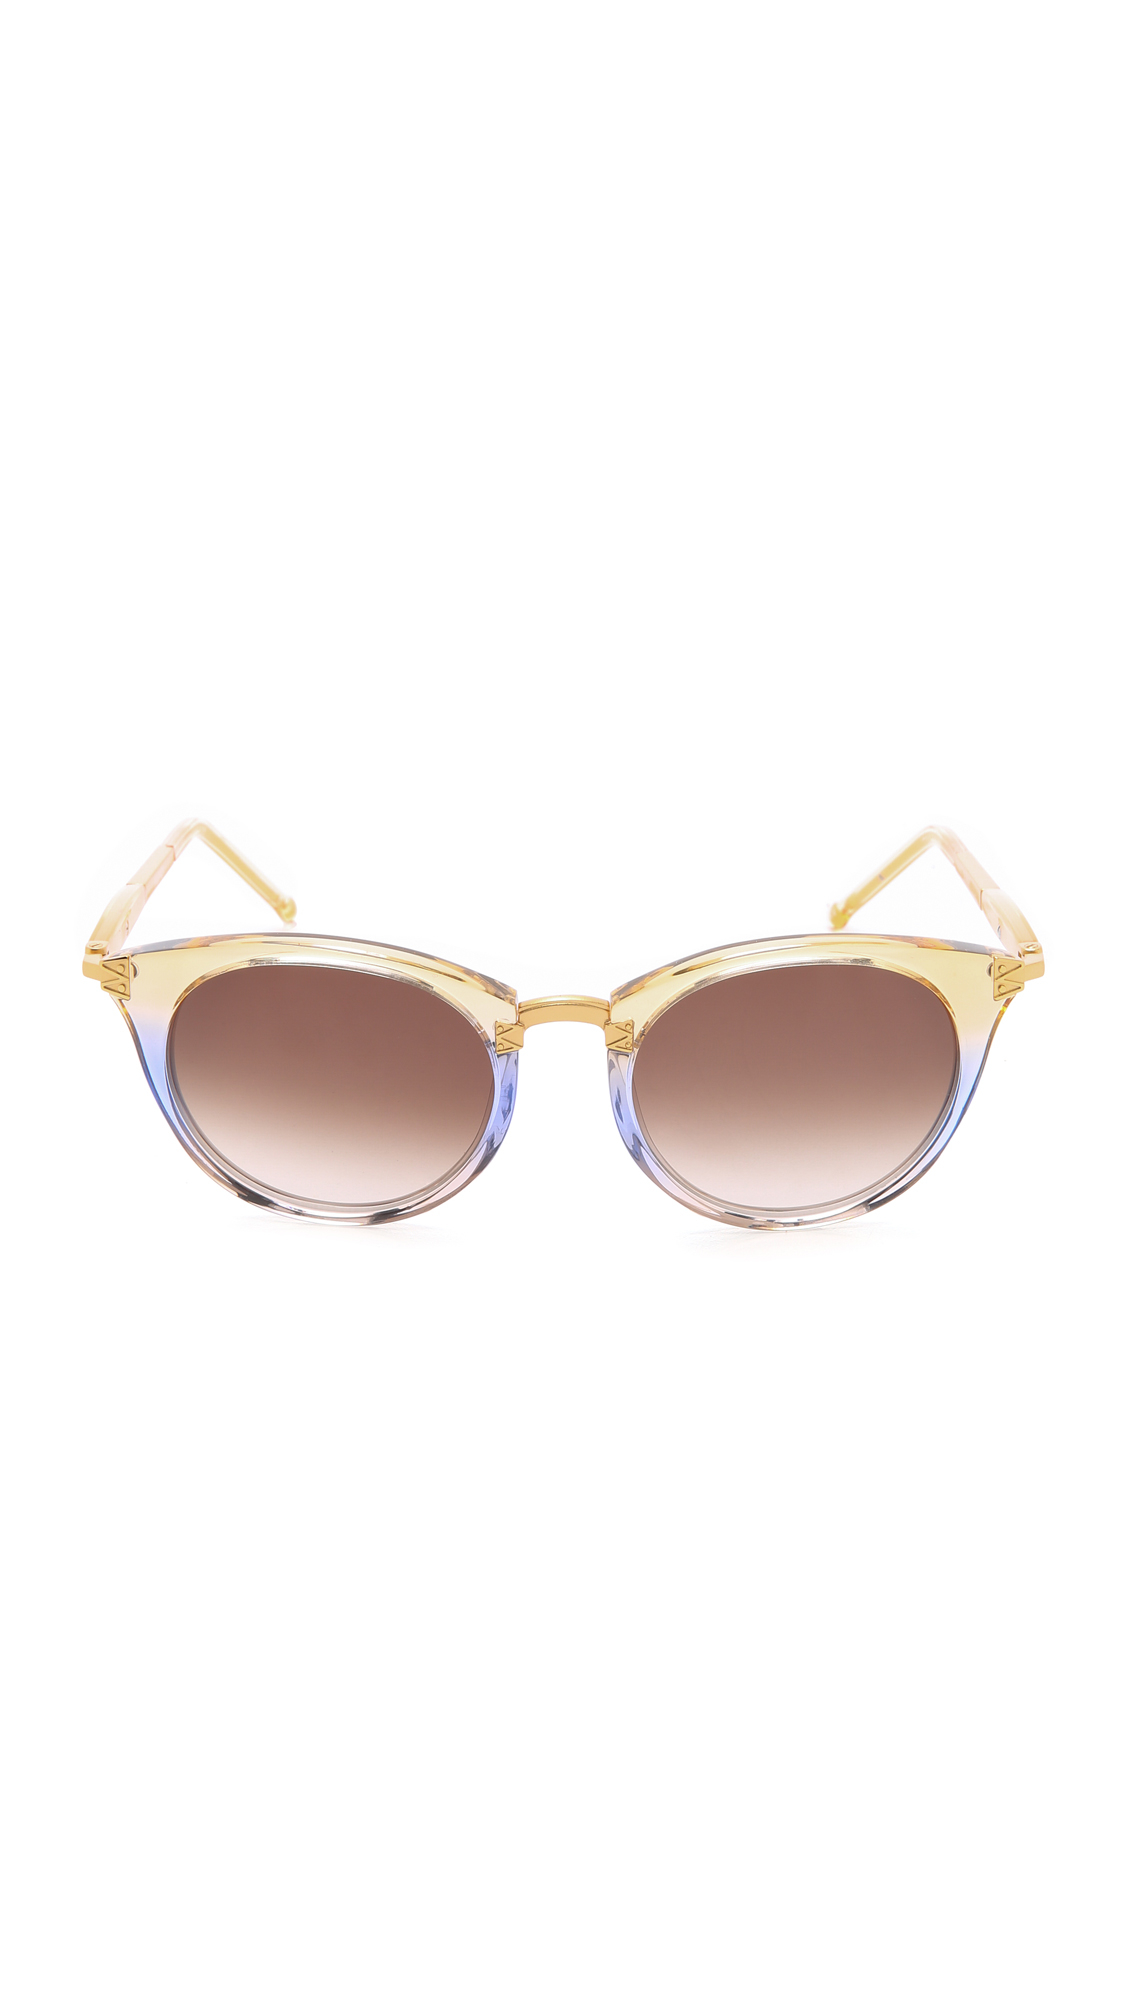 6a33ef3c35b Lyst - Wildfox Sunset Sunglasses - Daybreak brown in Brown